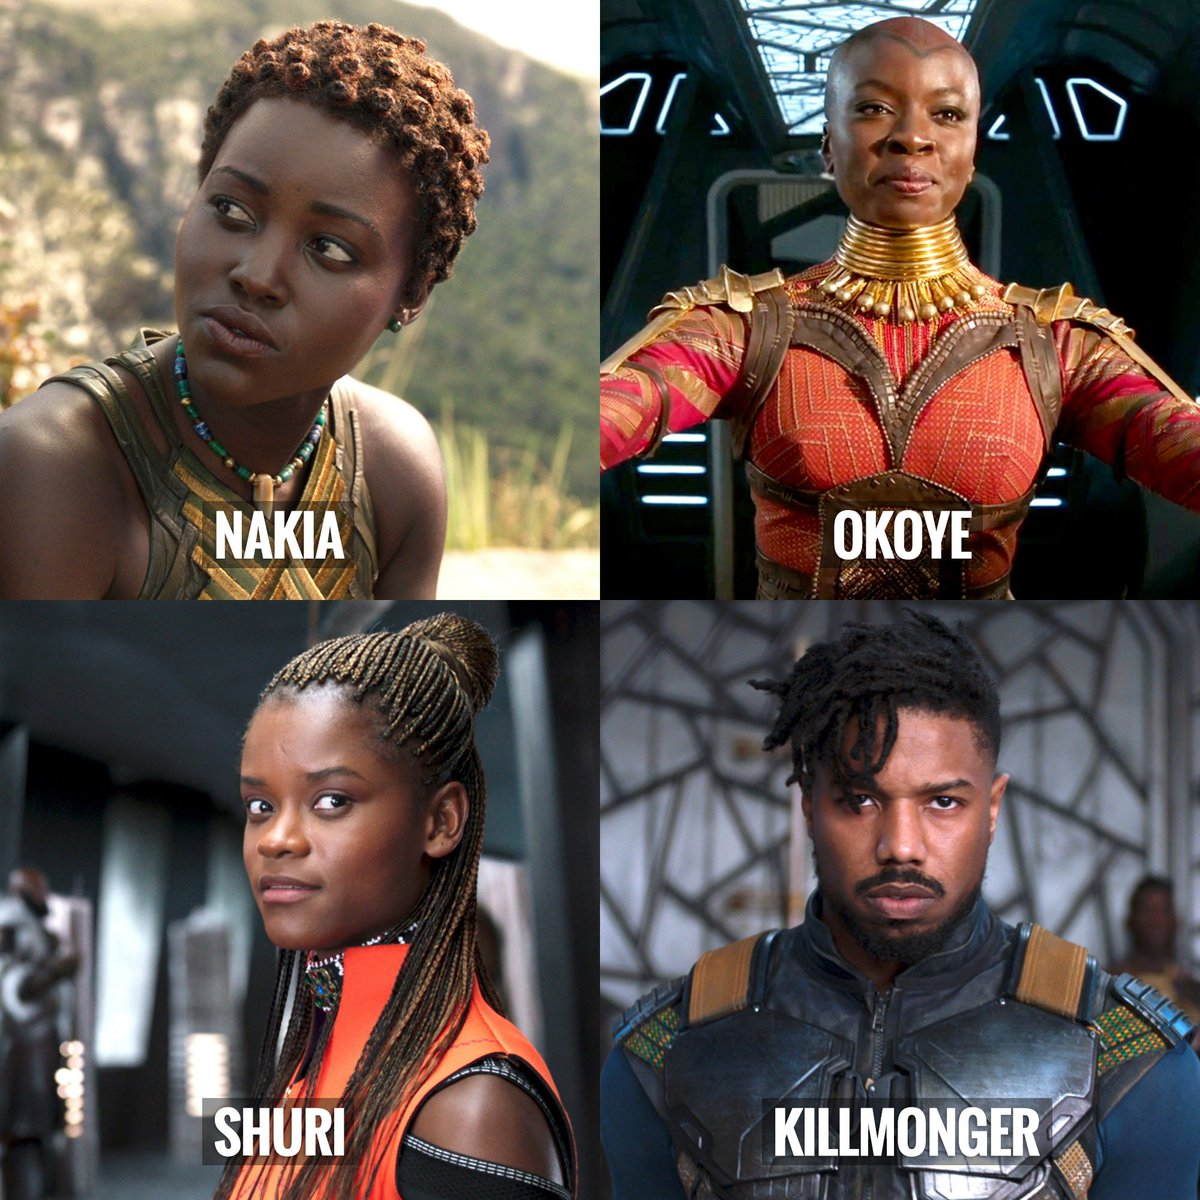 Which is your favorite new character from #BlackPanther?